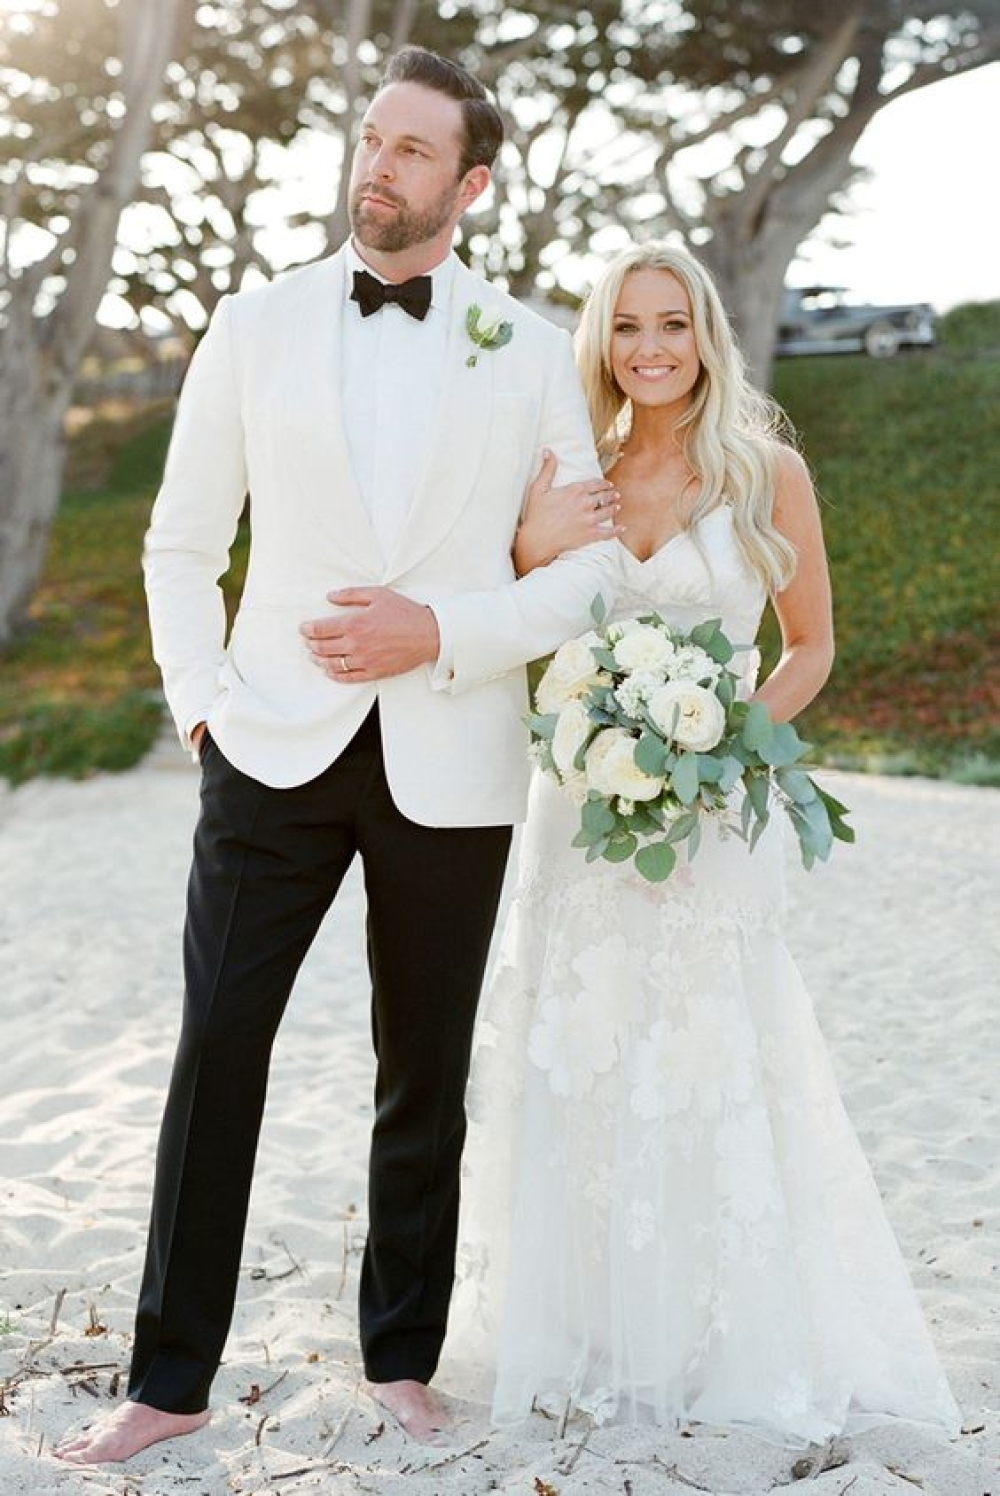 An All-White Elegant Wedding That Will Stand The Test Of Time https://www.weddingery.com